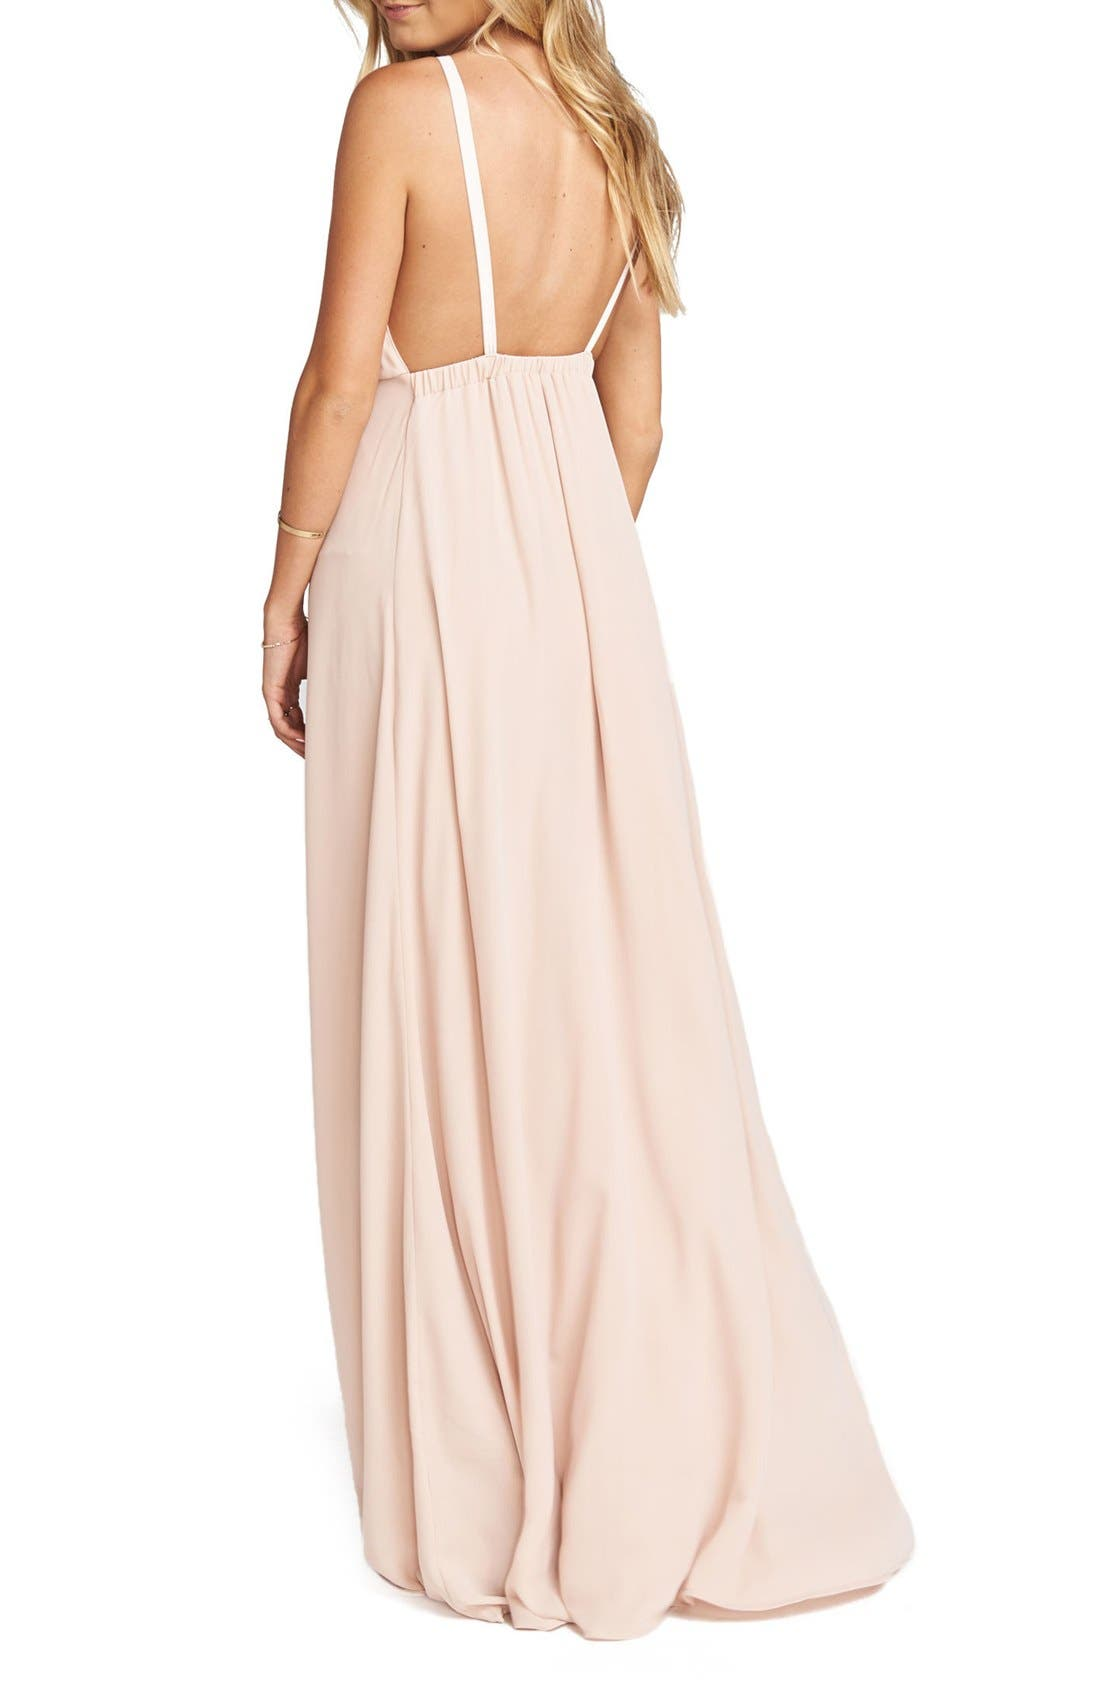 Amanda Open Back Blouson Gown,                             Alternate thumbnail 12, color,